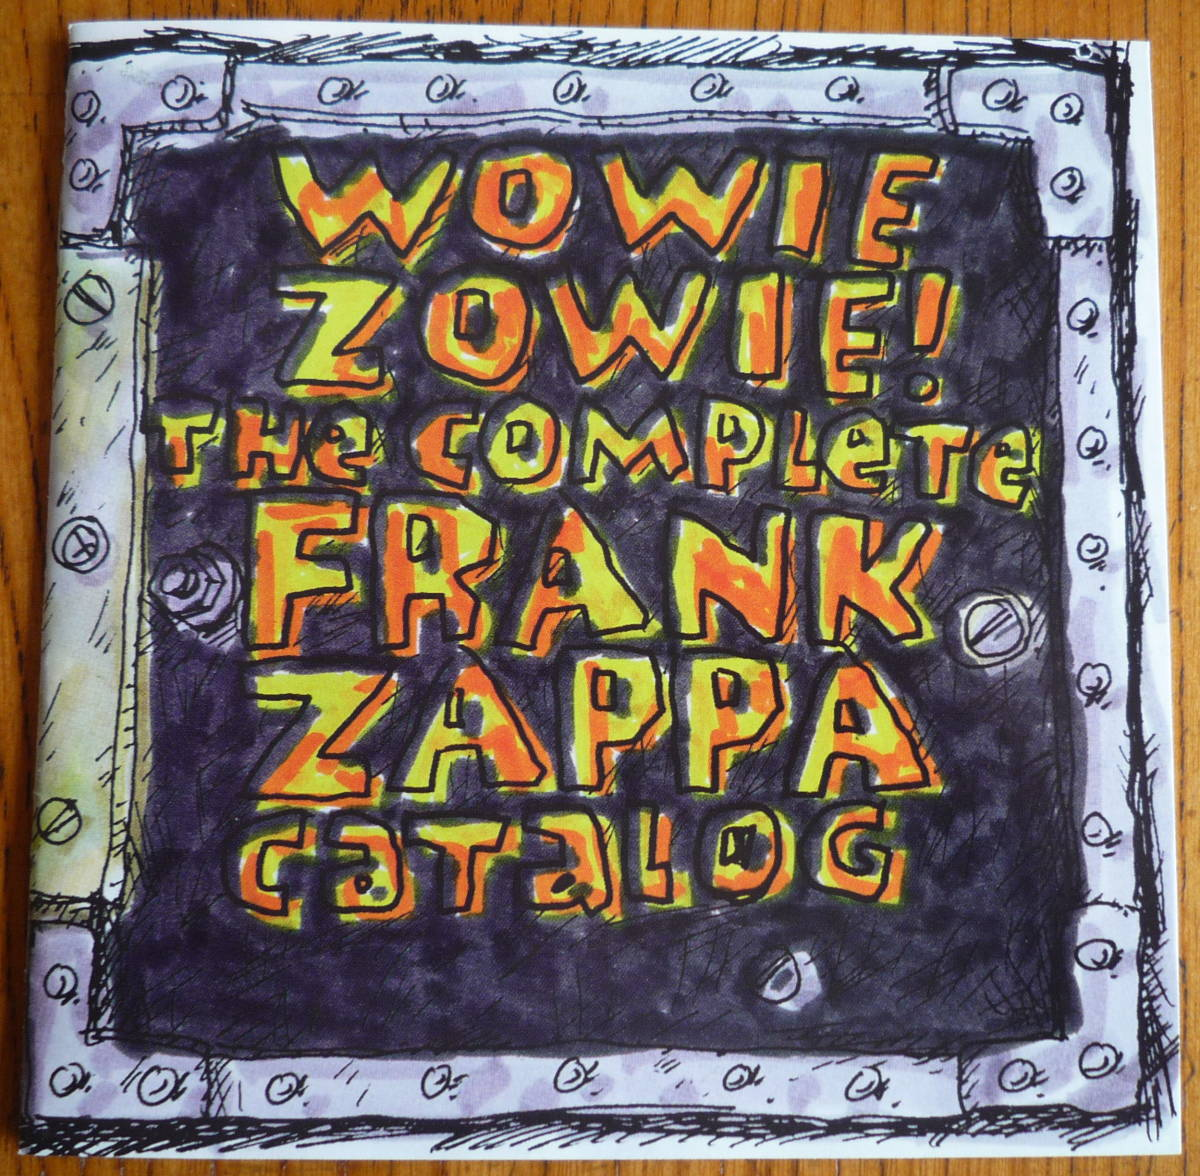 ■ 【CD/美品】 FRANK ZAPPA - HAVE I OFFENDED SOMEONE? フランク・ザッパ